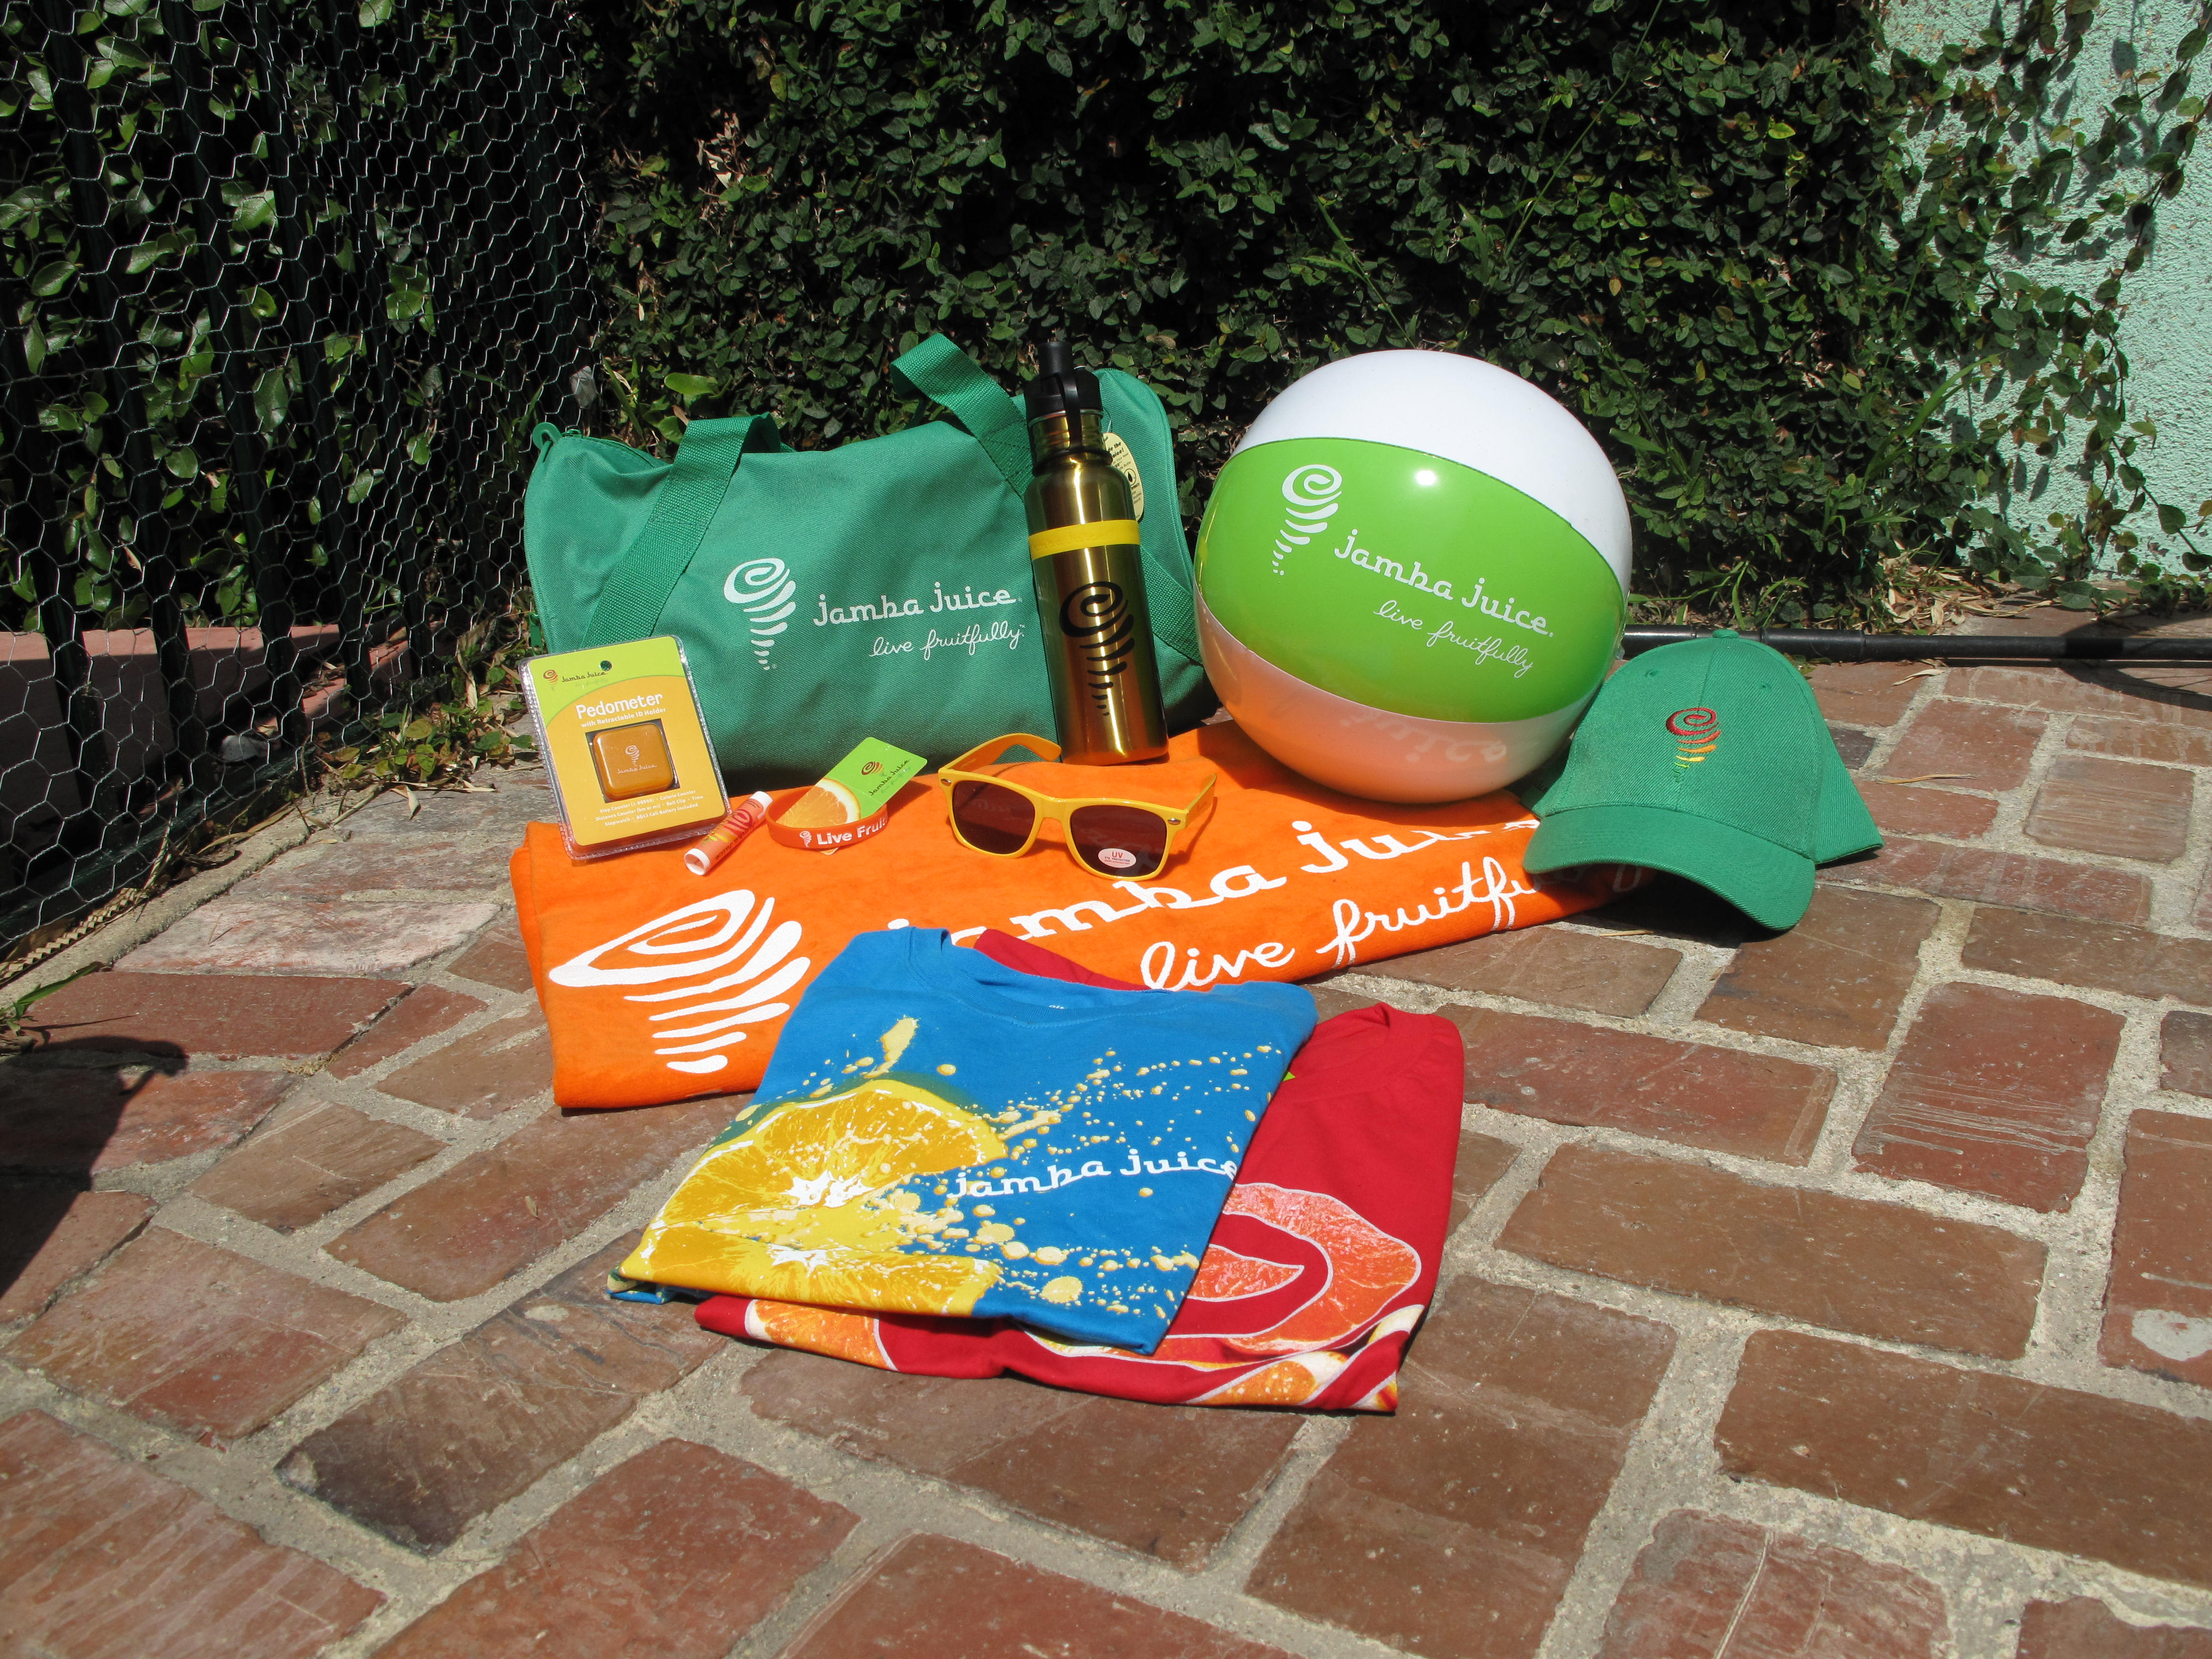 Jamba Juice's Summer Smoothie Specials Sweepstakes